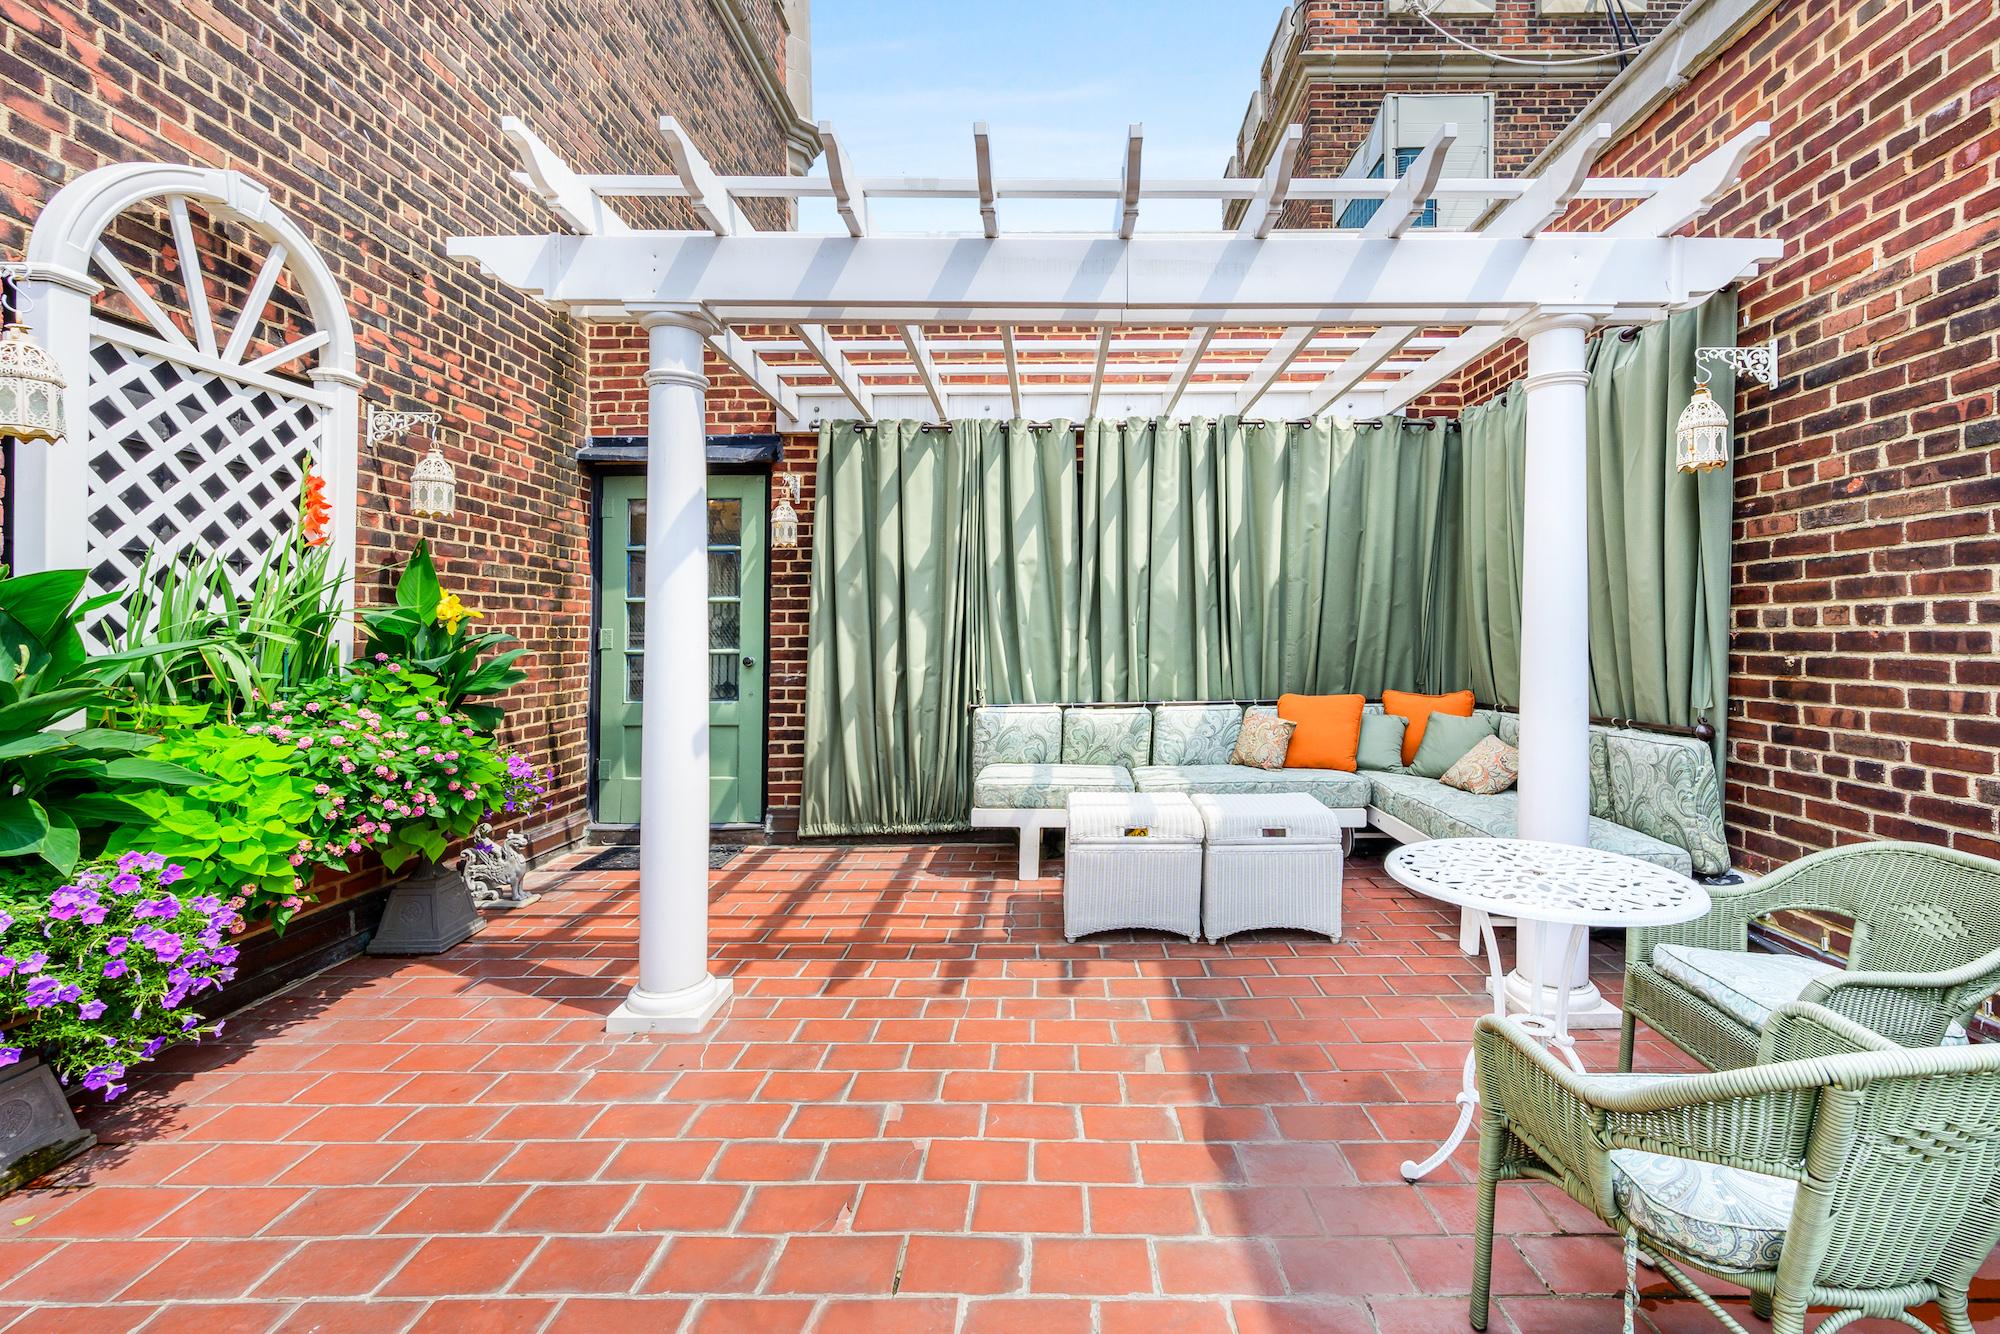 The penthouse has a shaded 300 st ft terrace with views across Manhattan